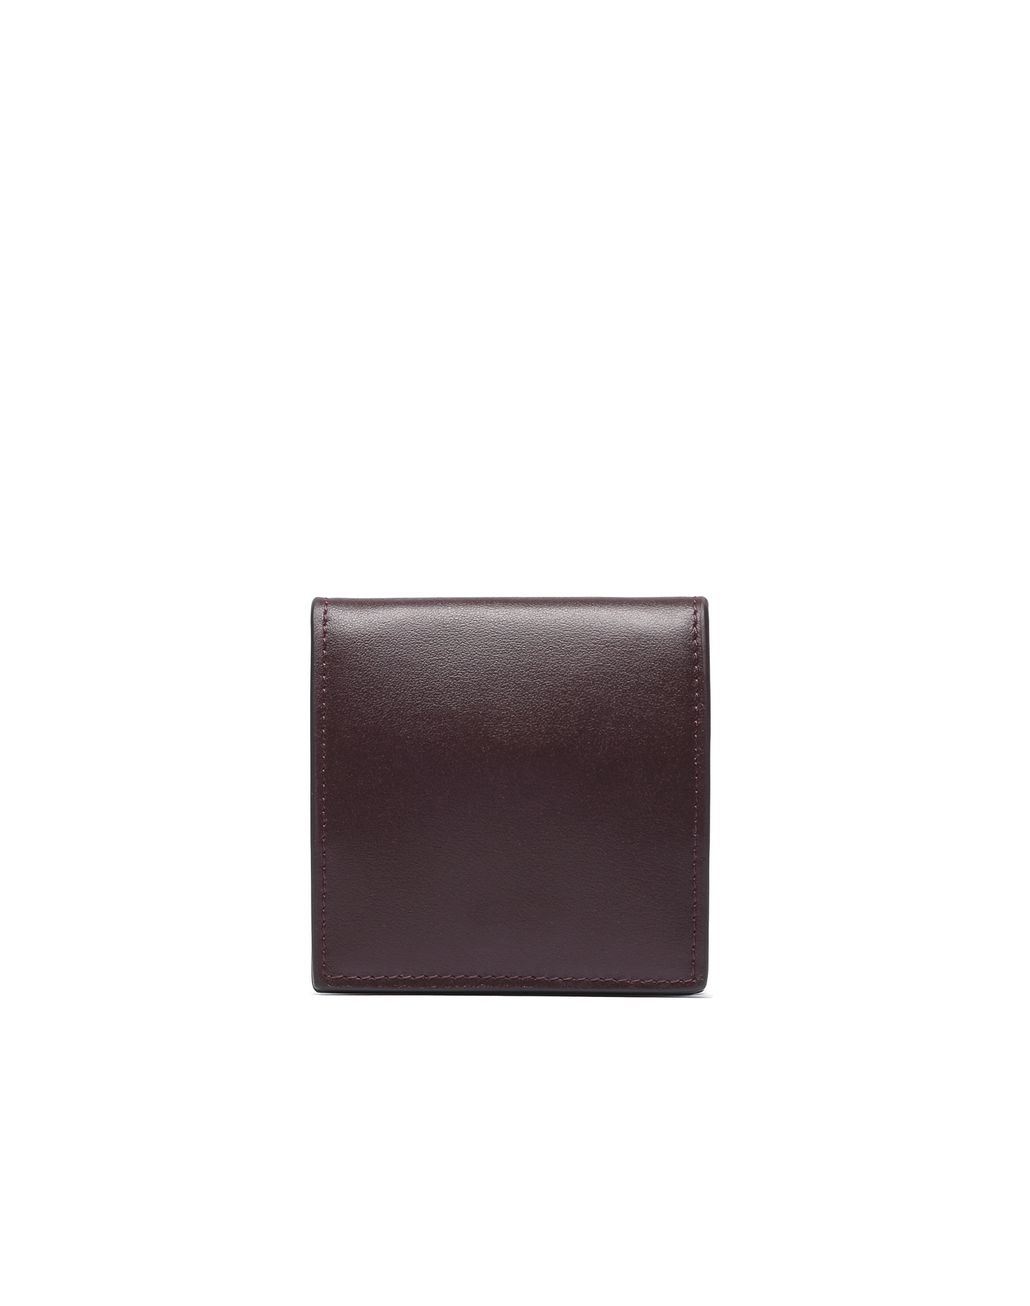 BRIONI Oxblood Coin Pocket Leather Goods Man d